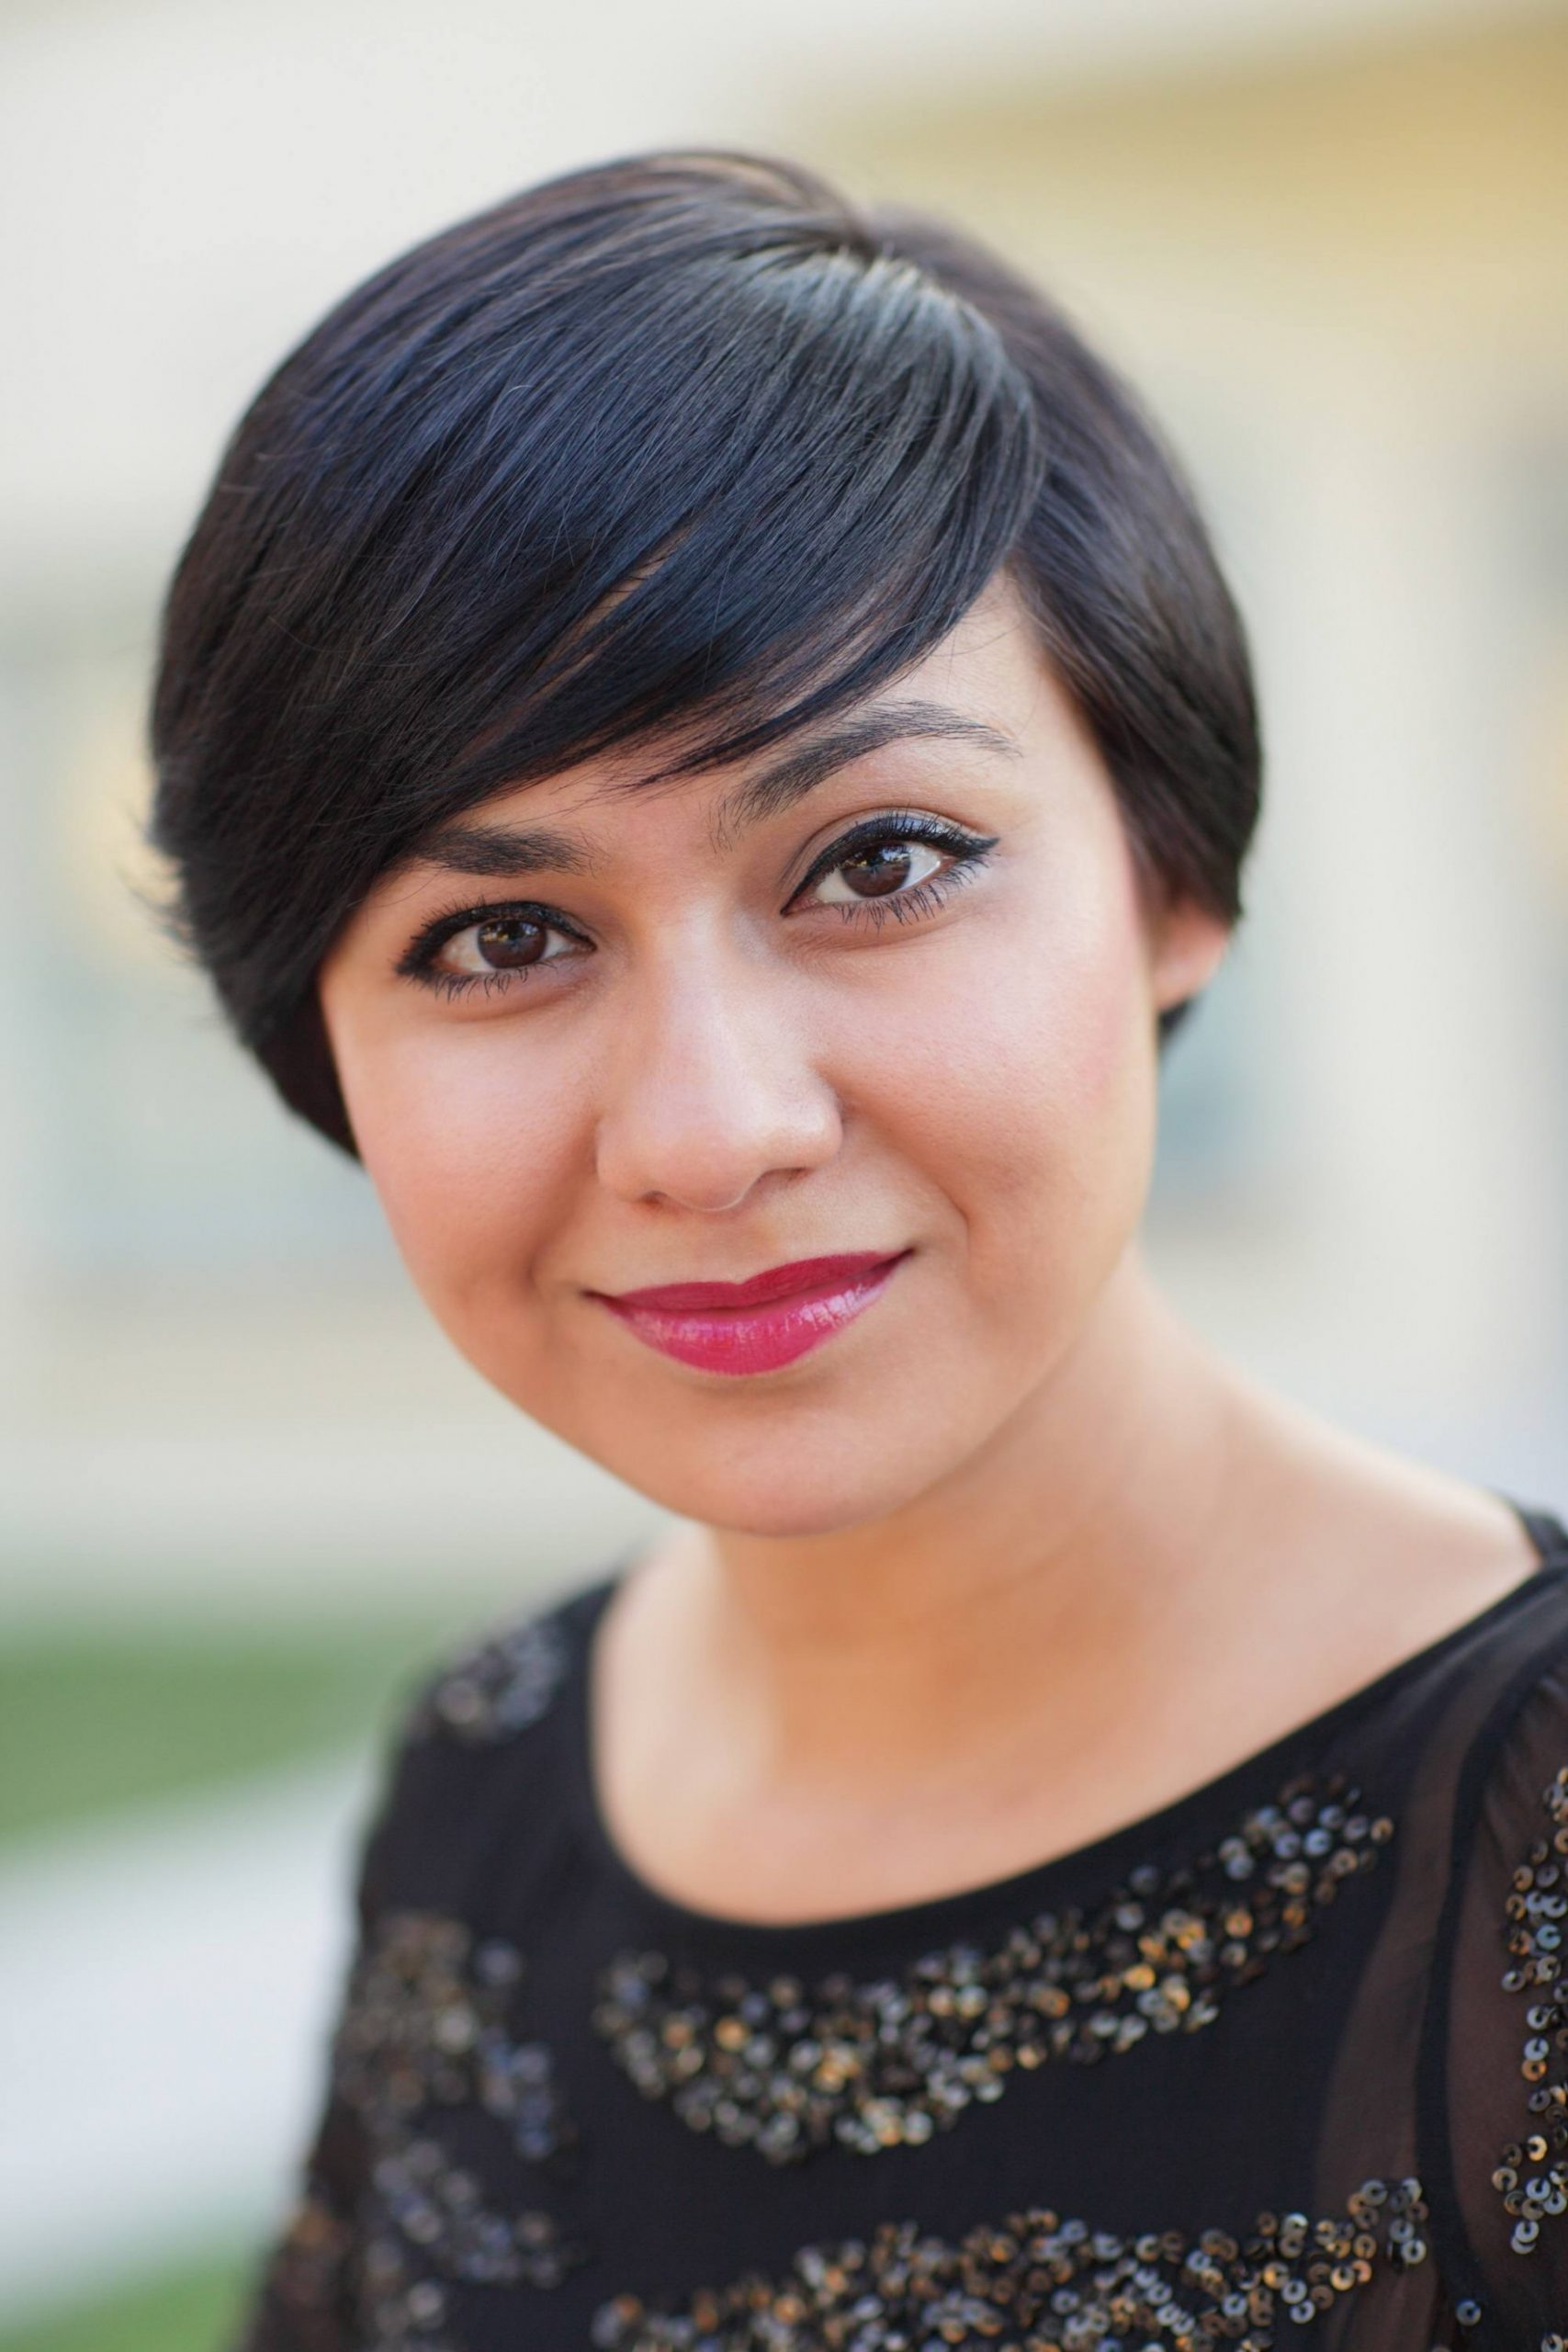 Short Hair for Round Face: 8 Stylish Ideas for 8!